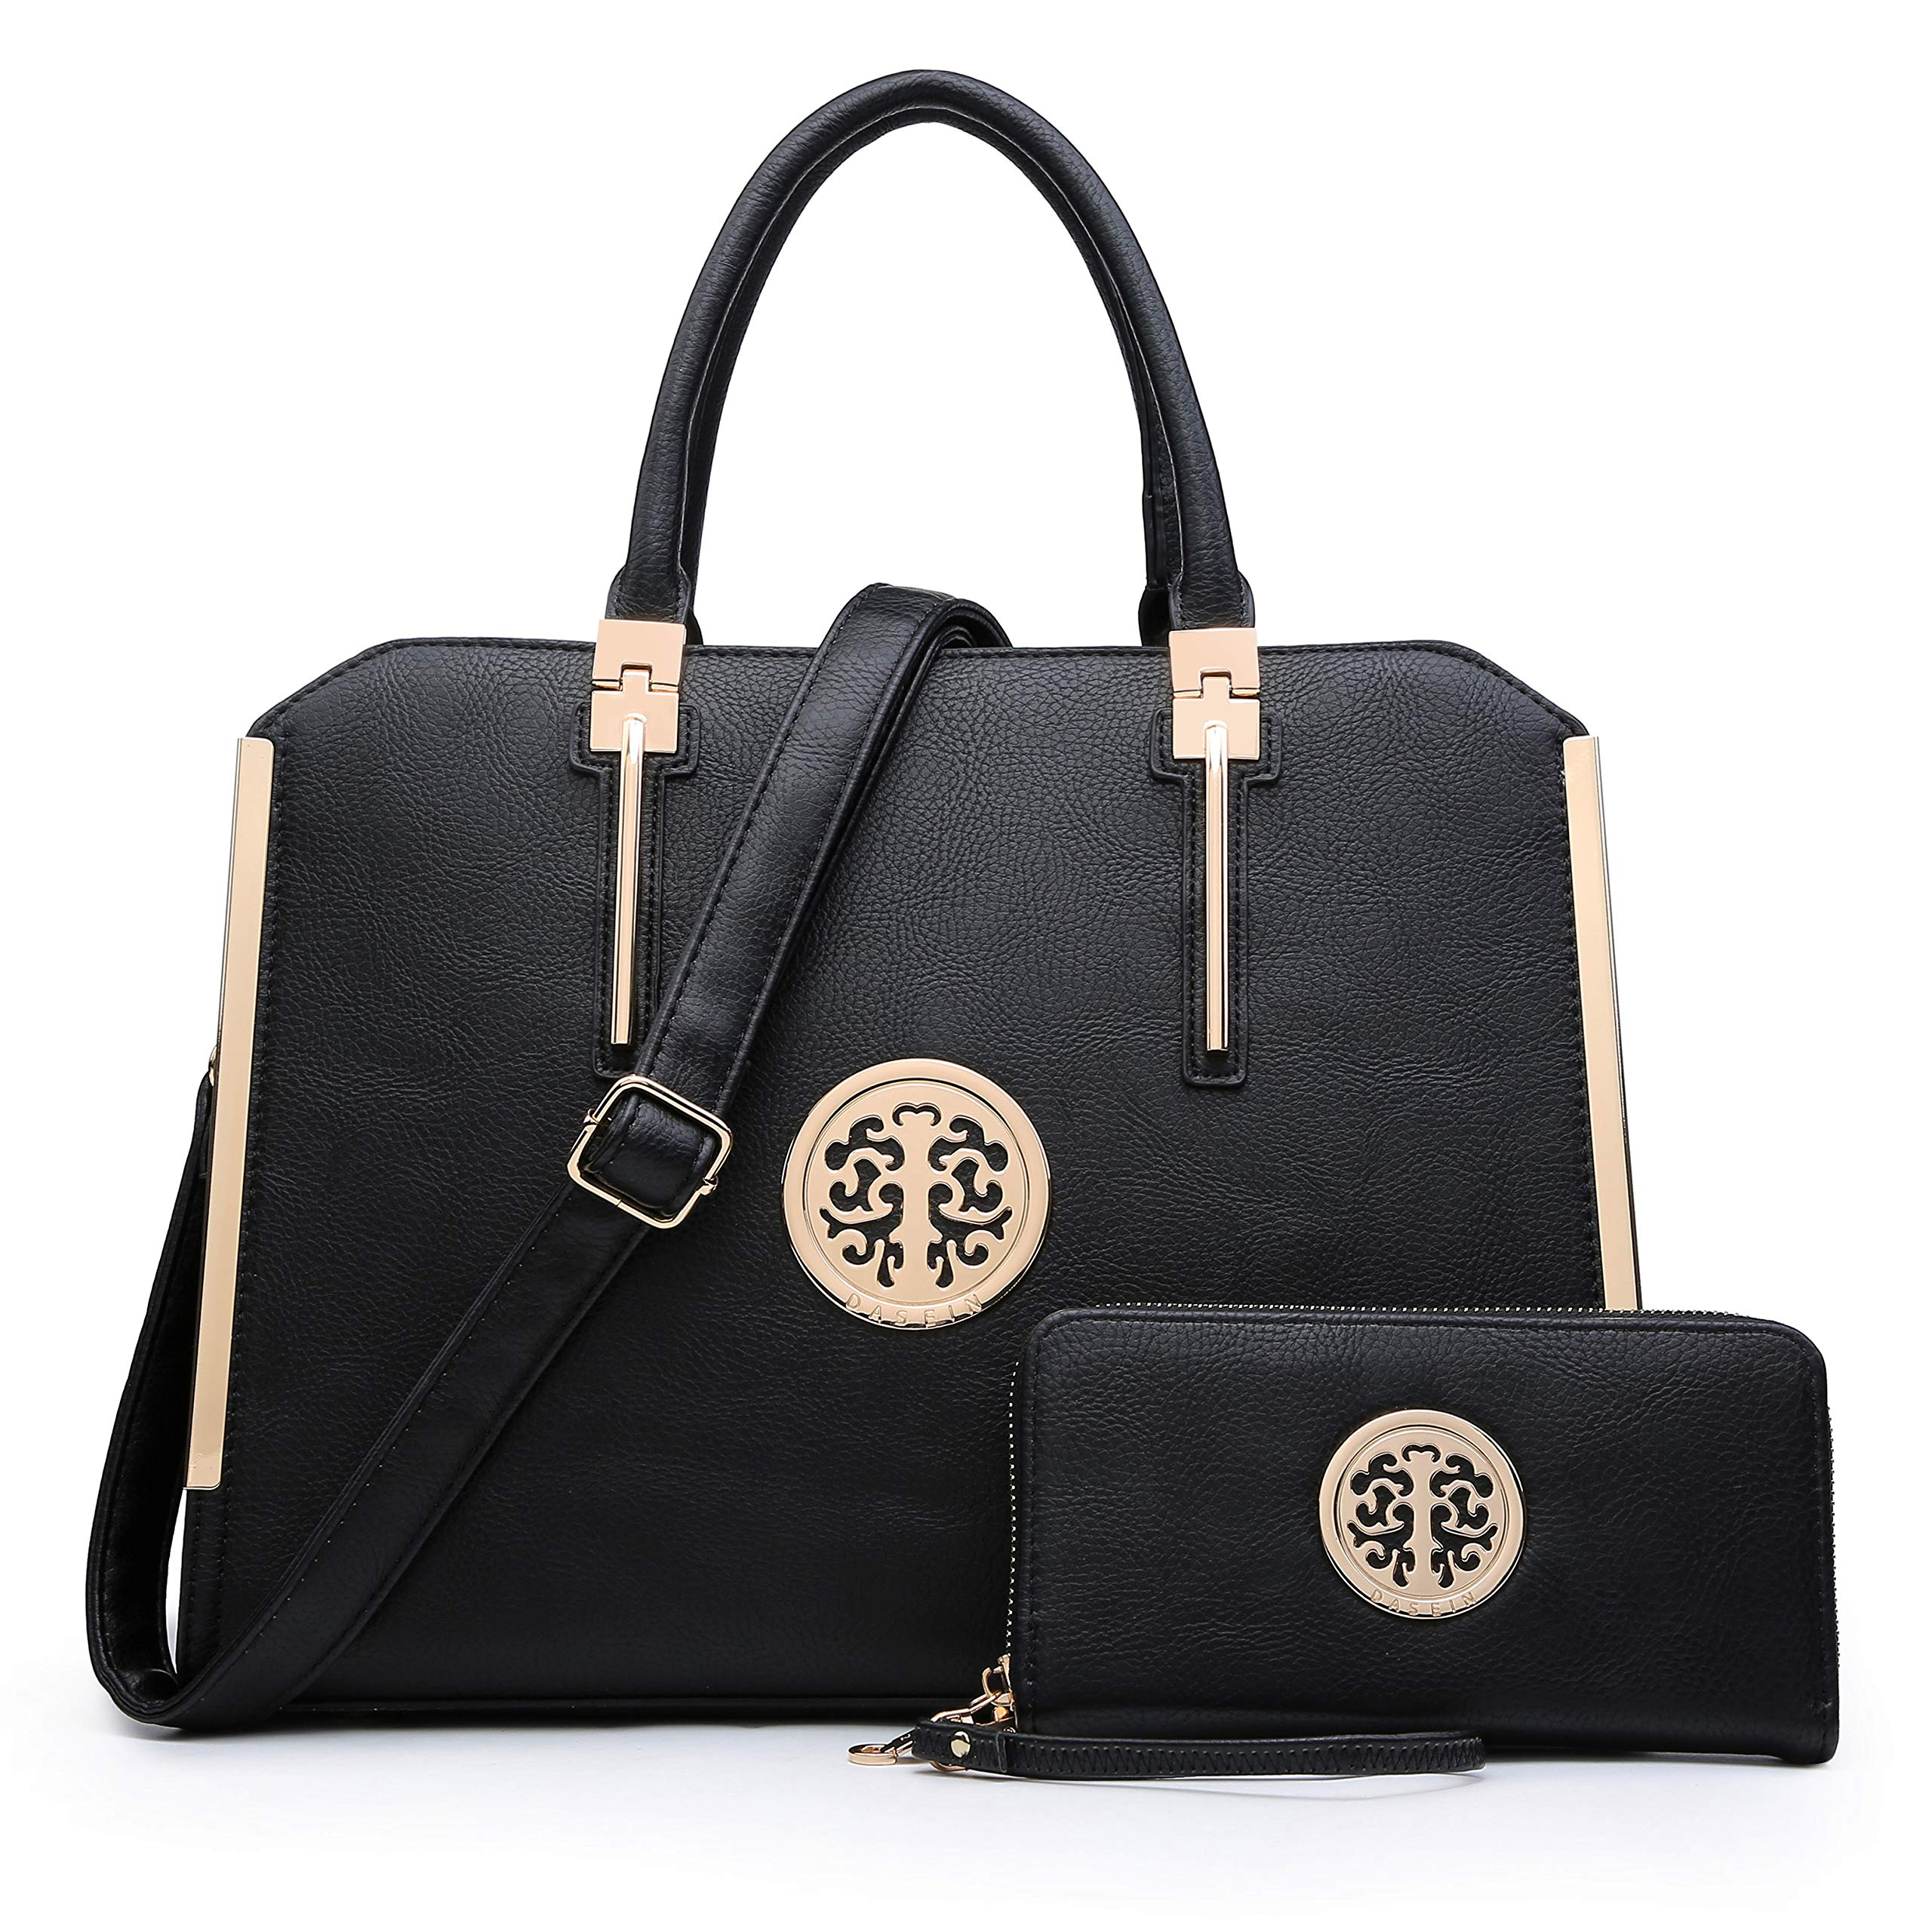 Dasein Women Handbags Purses Vegan Leather Satchel Structured Work Bag Shoulder Totes for 13 Inches Laptop Tablet (Black)